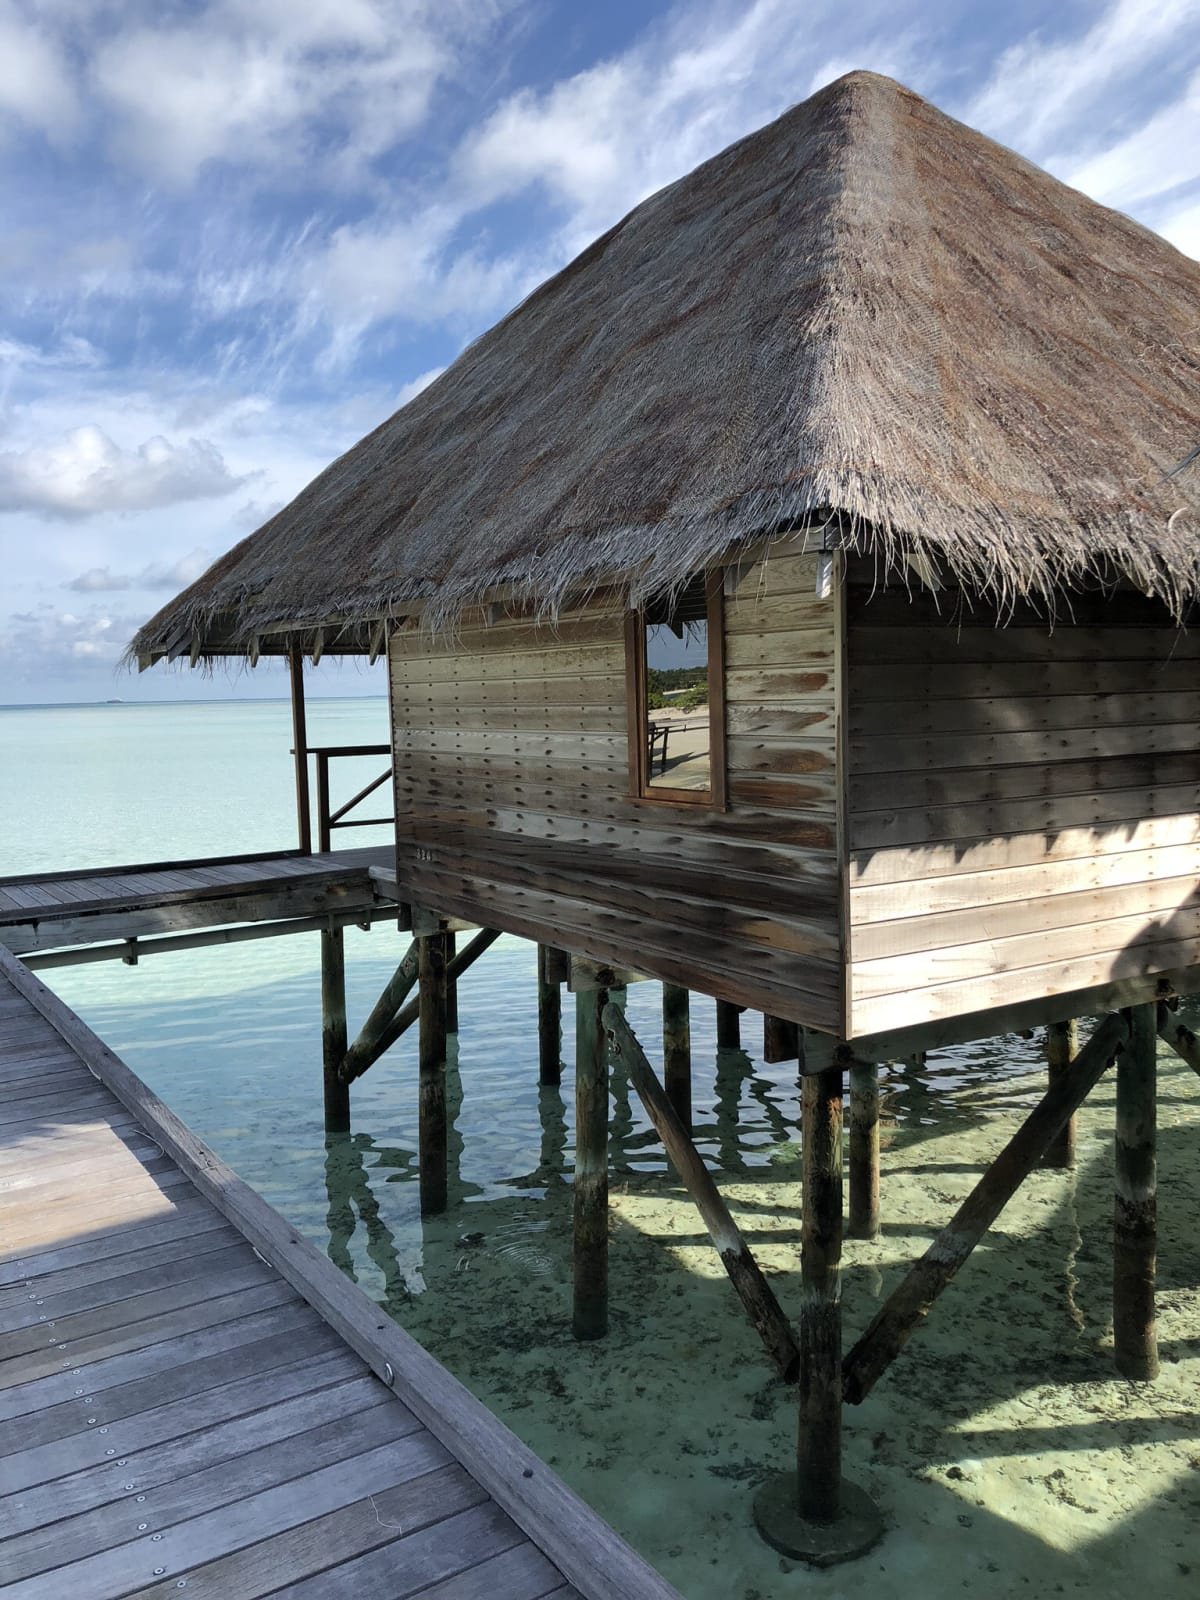 A simple hut on the water